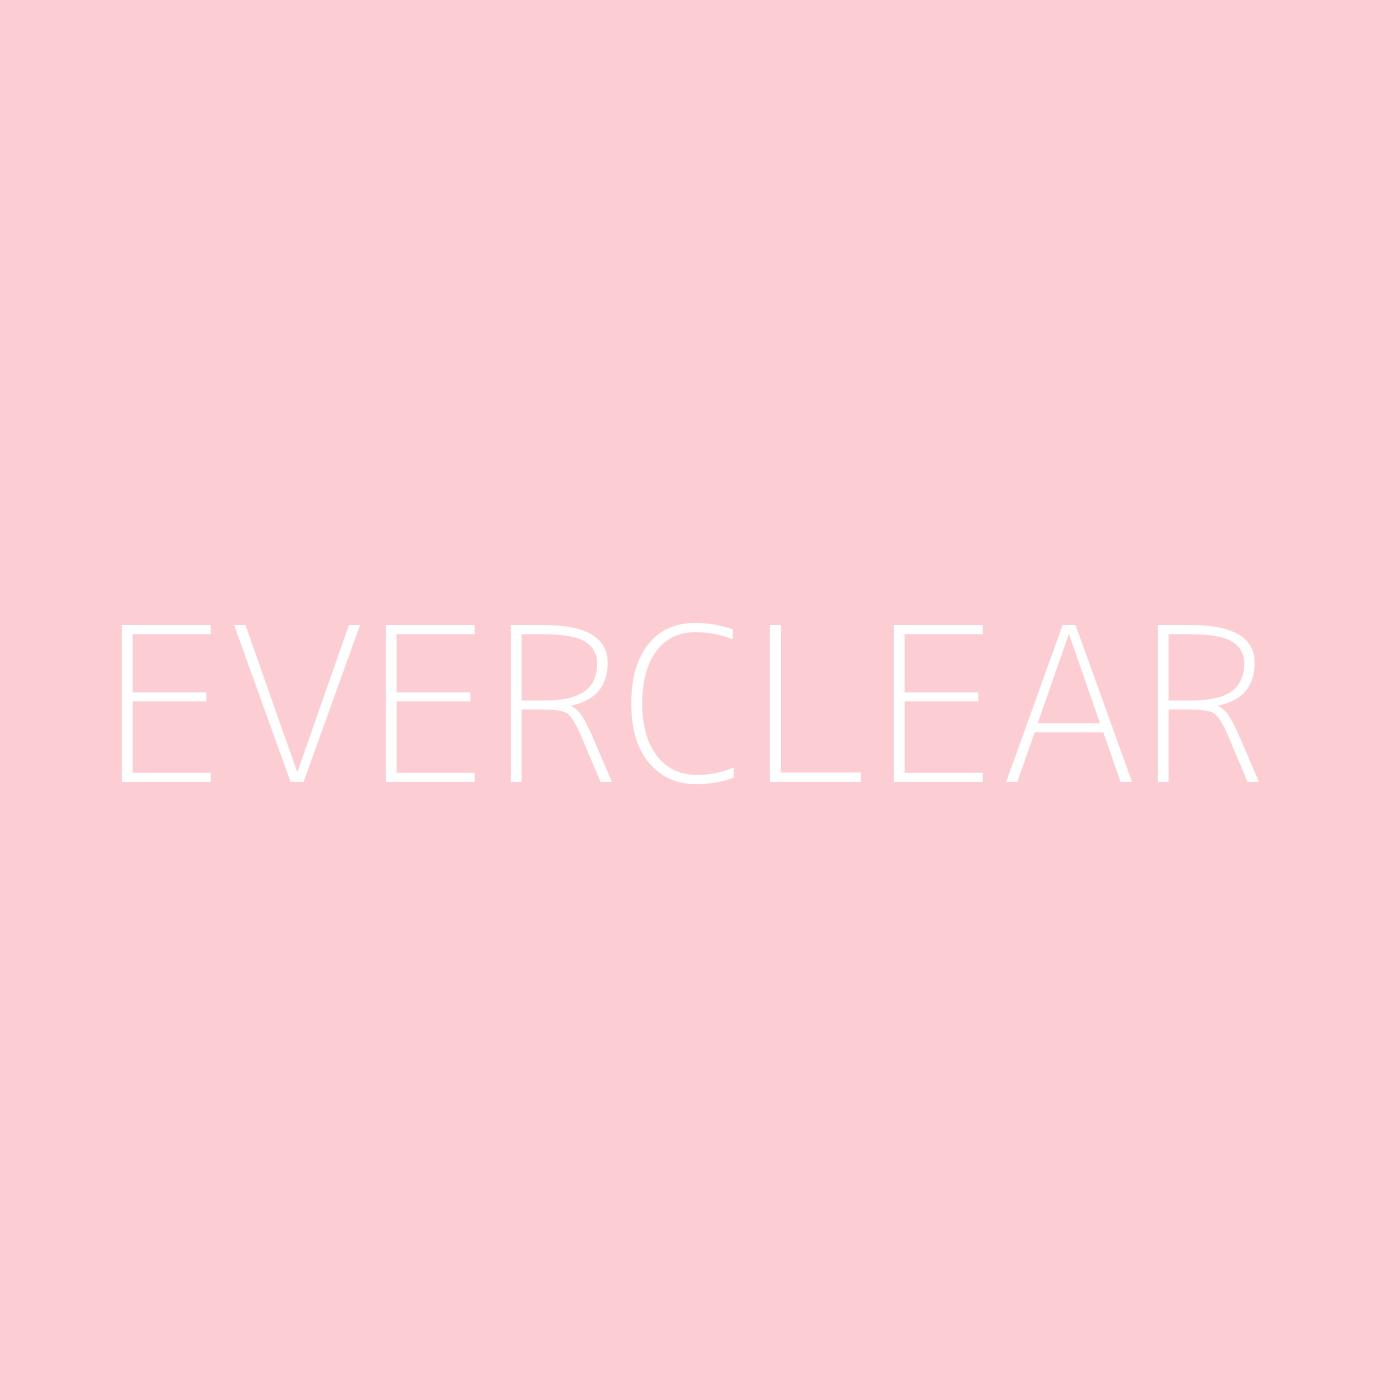 Everclear Playlist Artwork